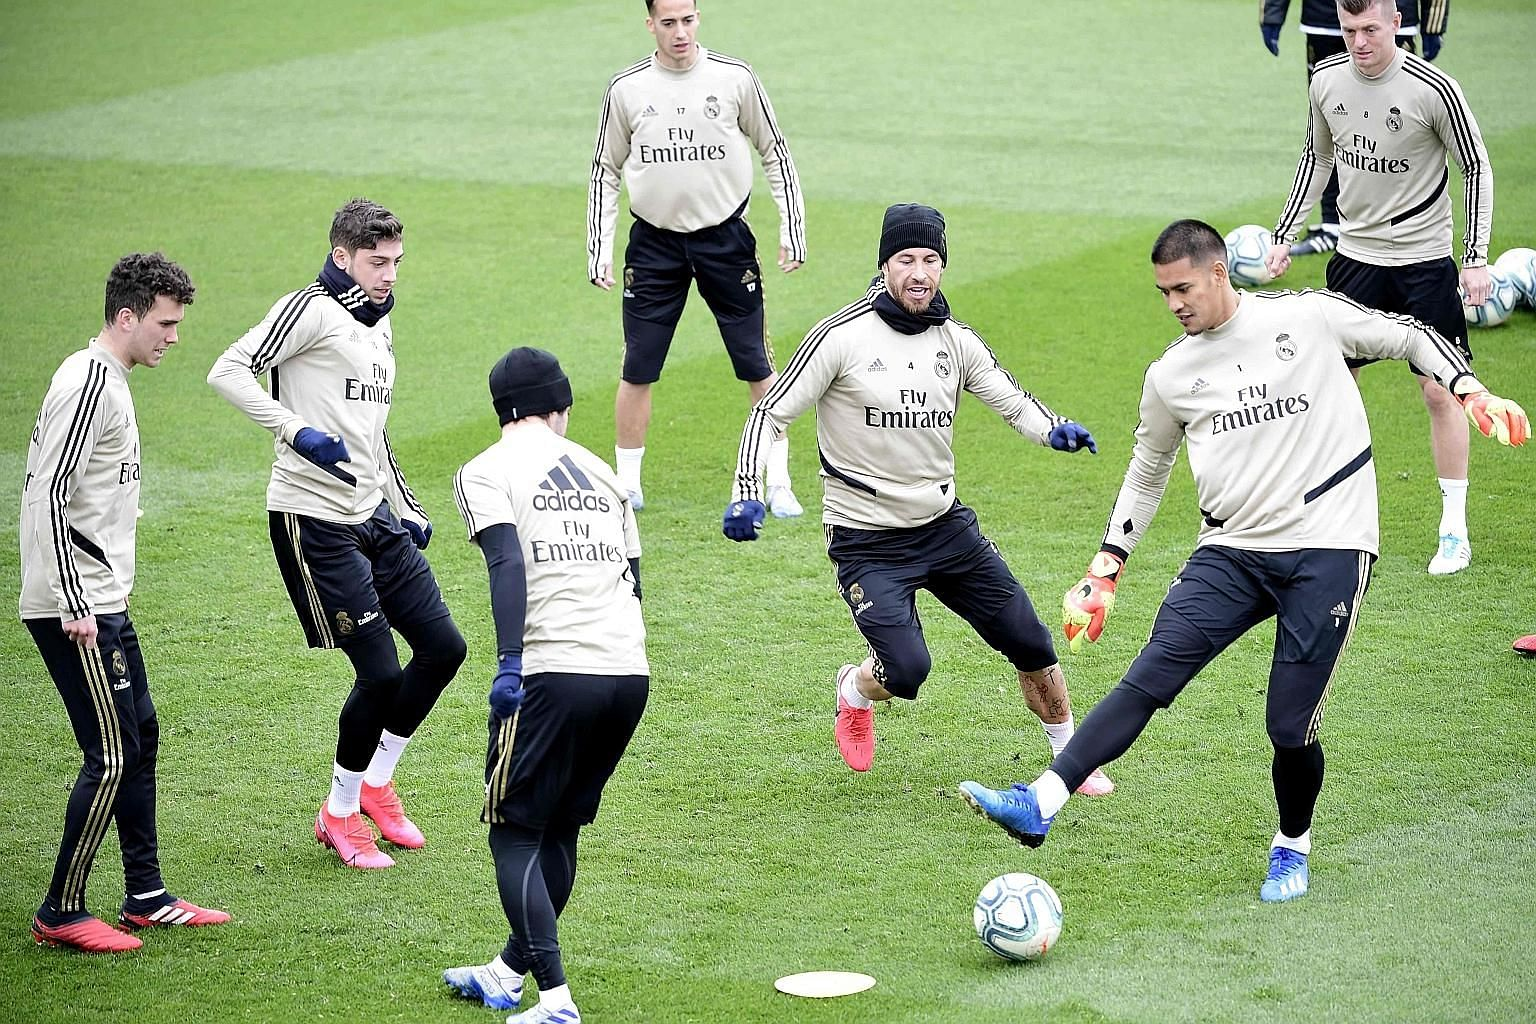 Real Madrid players, led by captain Sergio Ramos (third from right) training at their Estadio Alfredo di Stefano training centre, where they will play their six remaining home league games while the Santiago Bernabeu is being renovated. They are two